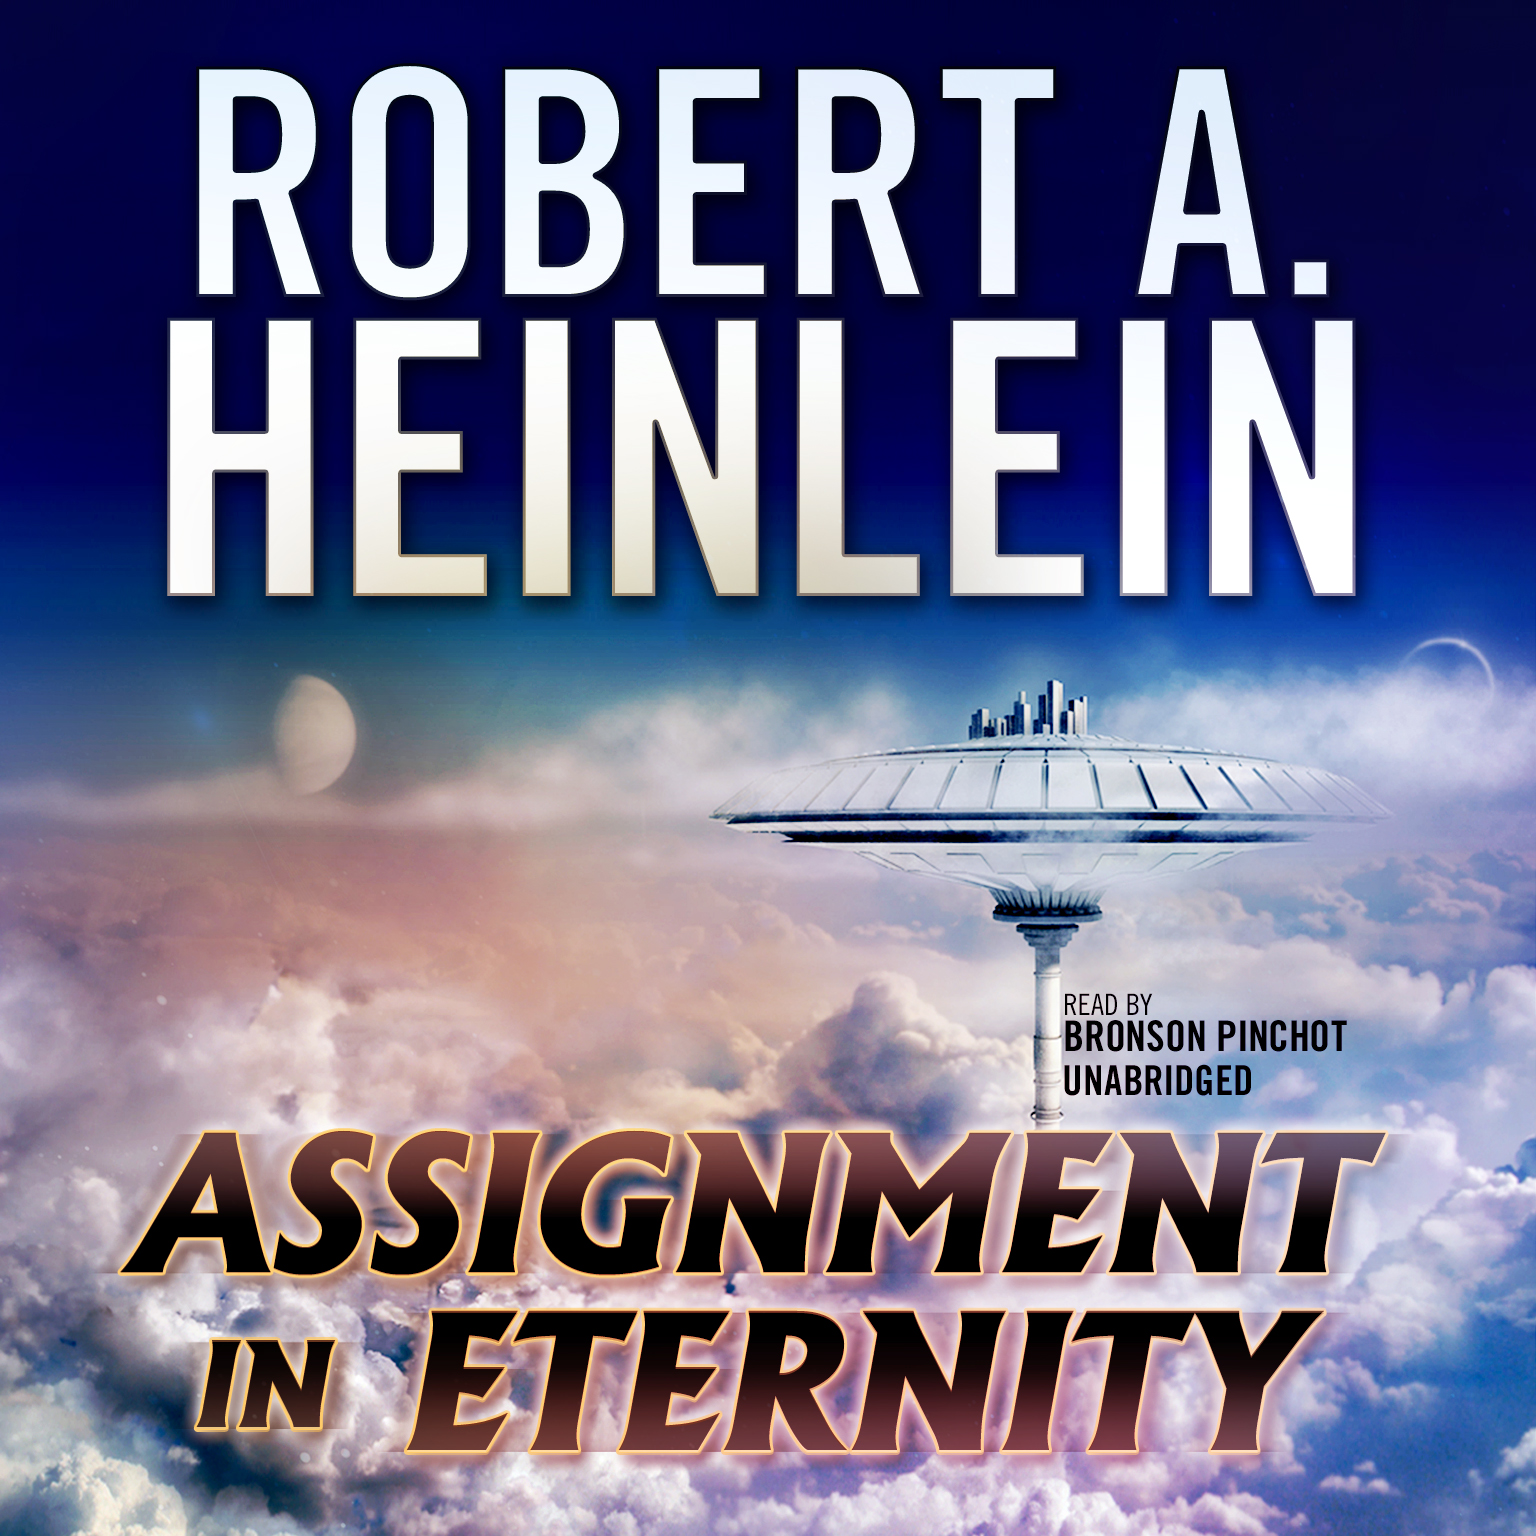 Printable Assignment in Eternity Audiobook Cover Art